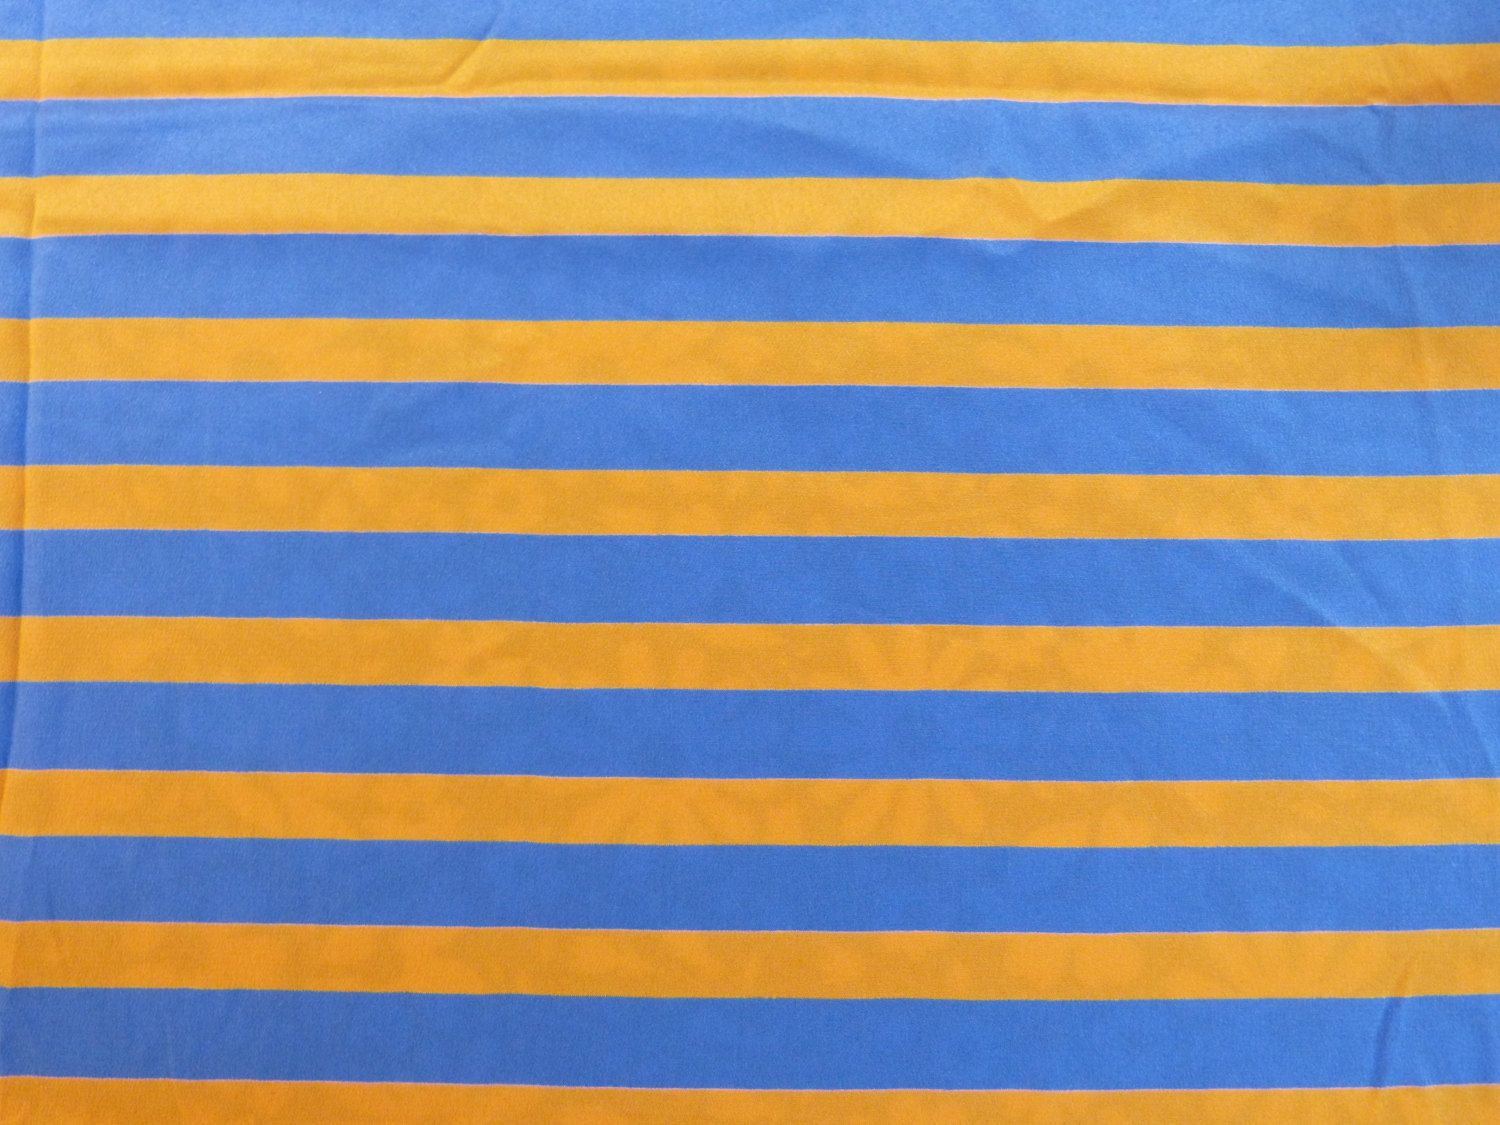 Ochre & blue stripes fluid light weight silky polyester unused fabric coupon - French 80s vintage pretty ochre & blue stripes pattern, the fabric feels like fluid & silky & slightly shiny light weight polyester, great for linings & scarves & blouses the fabric is unused, no stains, no rips, no flaws excellent condition  width circa 140 cm length circa 245 cm  *for all your sewing projects*   PLEASE READ MY POLICIES PAGE BEFORE ORDERING!  www.facebook.com/labaronnevintage…